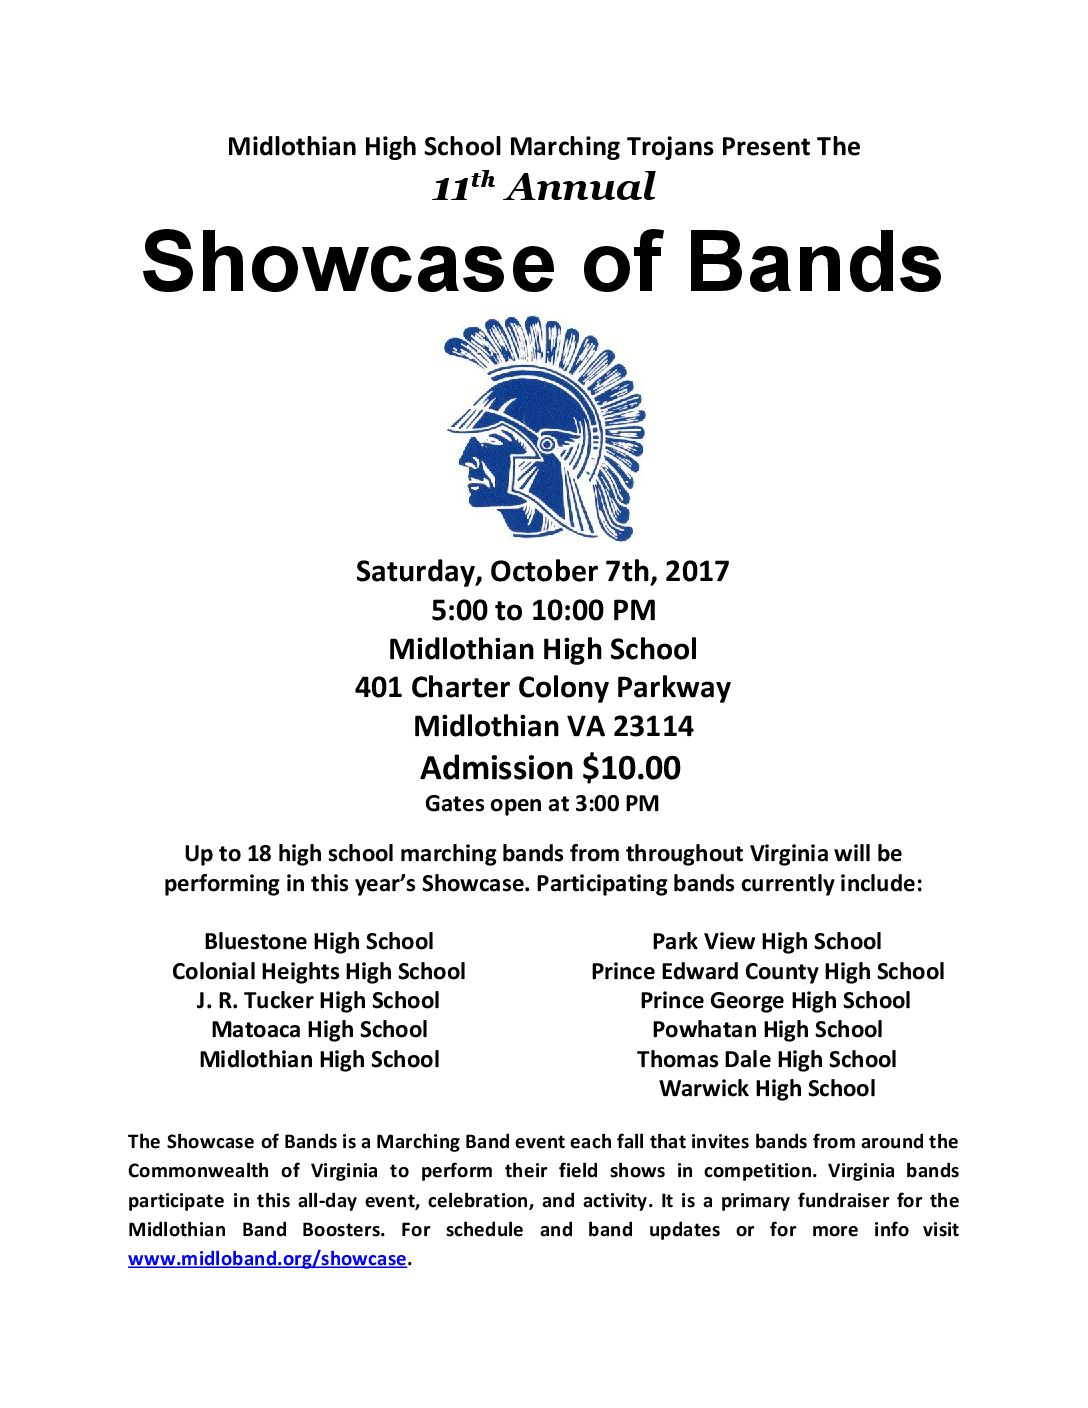 Showcase of Bands: October 7, 2017, from 5-10 pm at Midlothian High School.